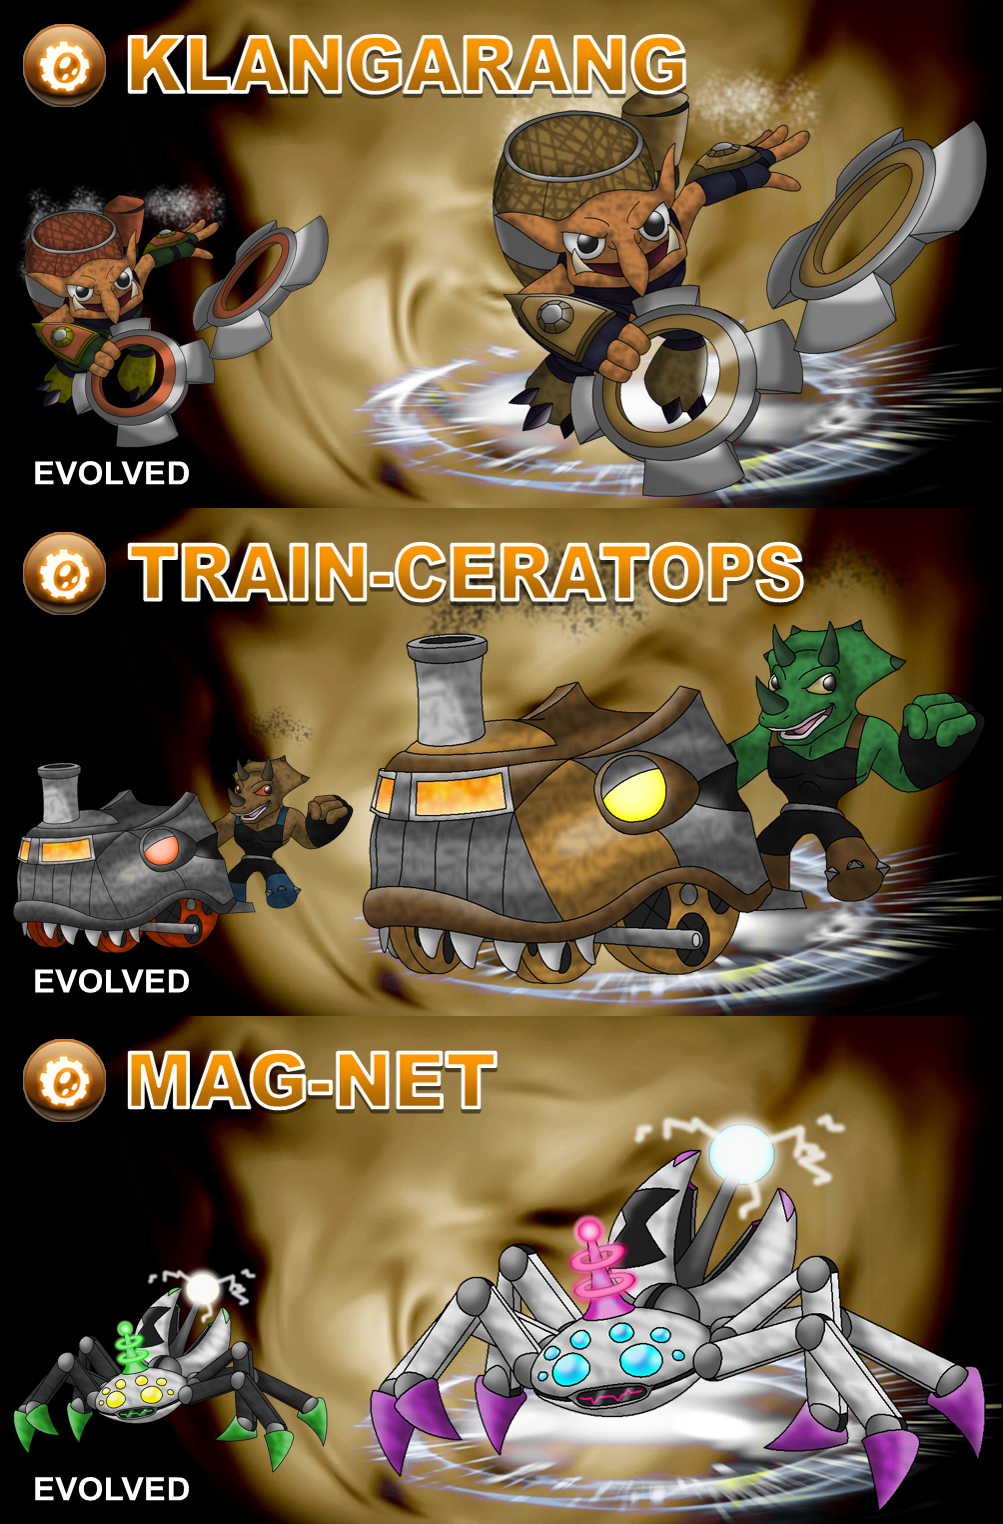 Skylander OCs: Villains - Tech By Proceleon On DeviantArt